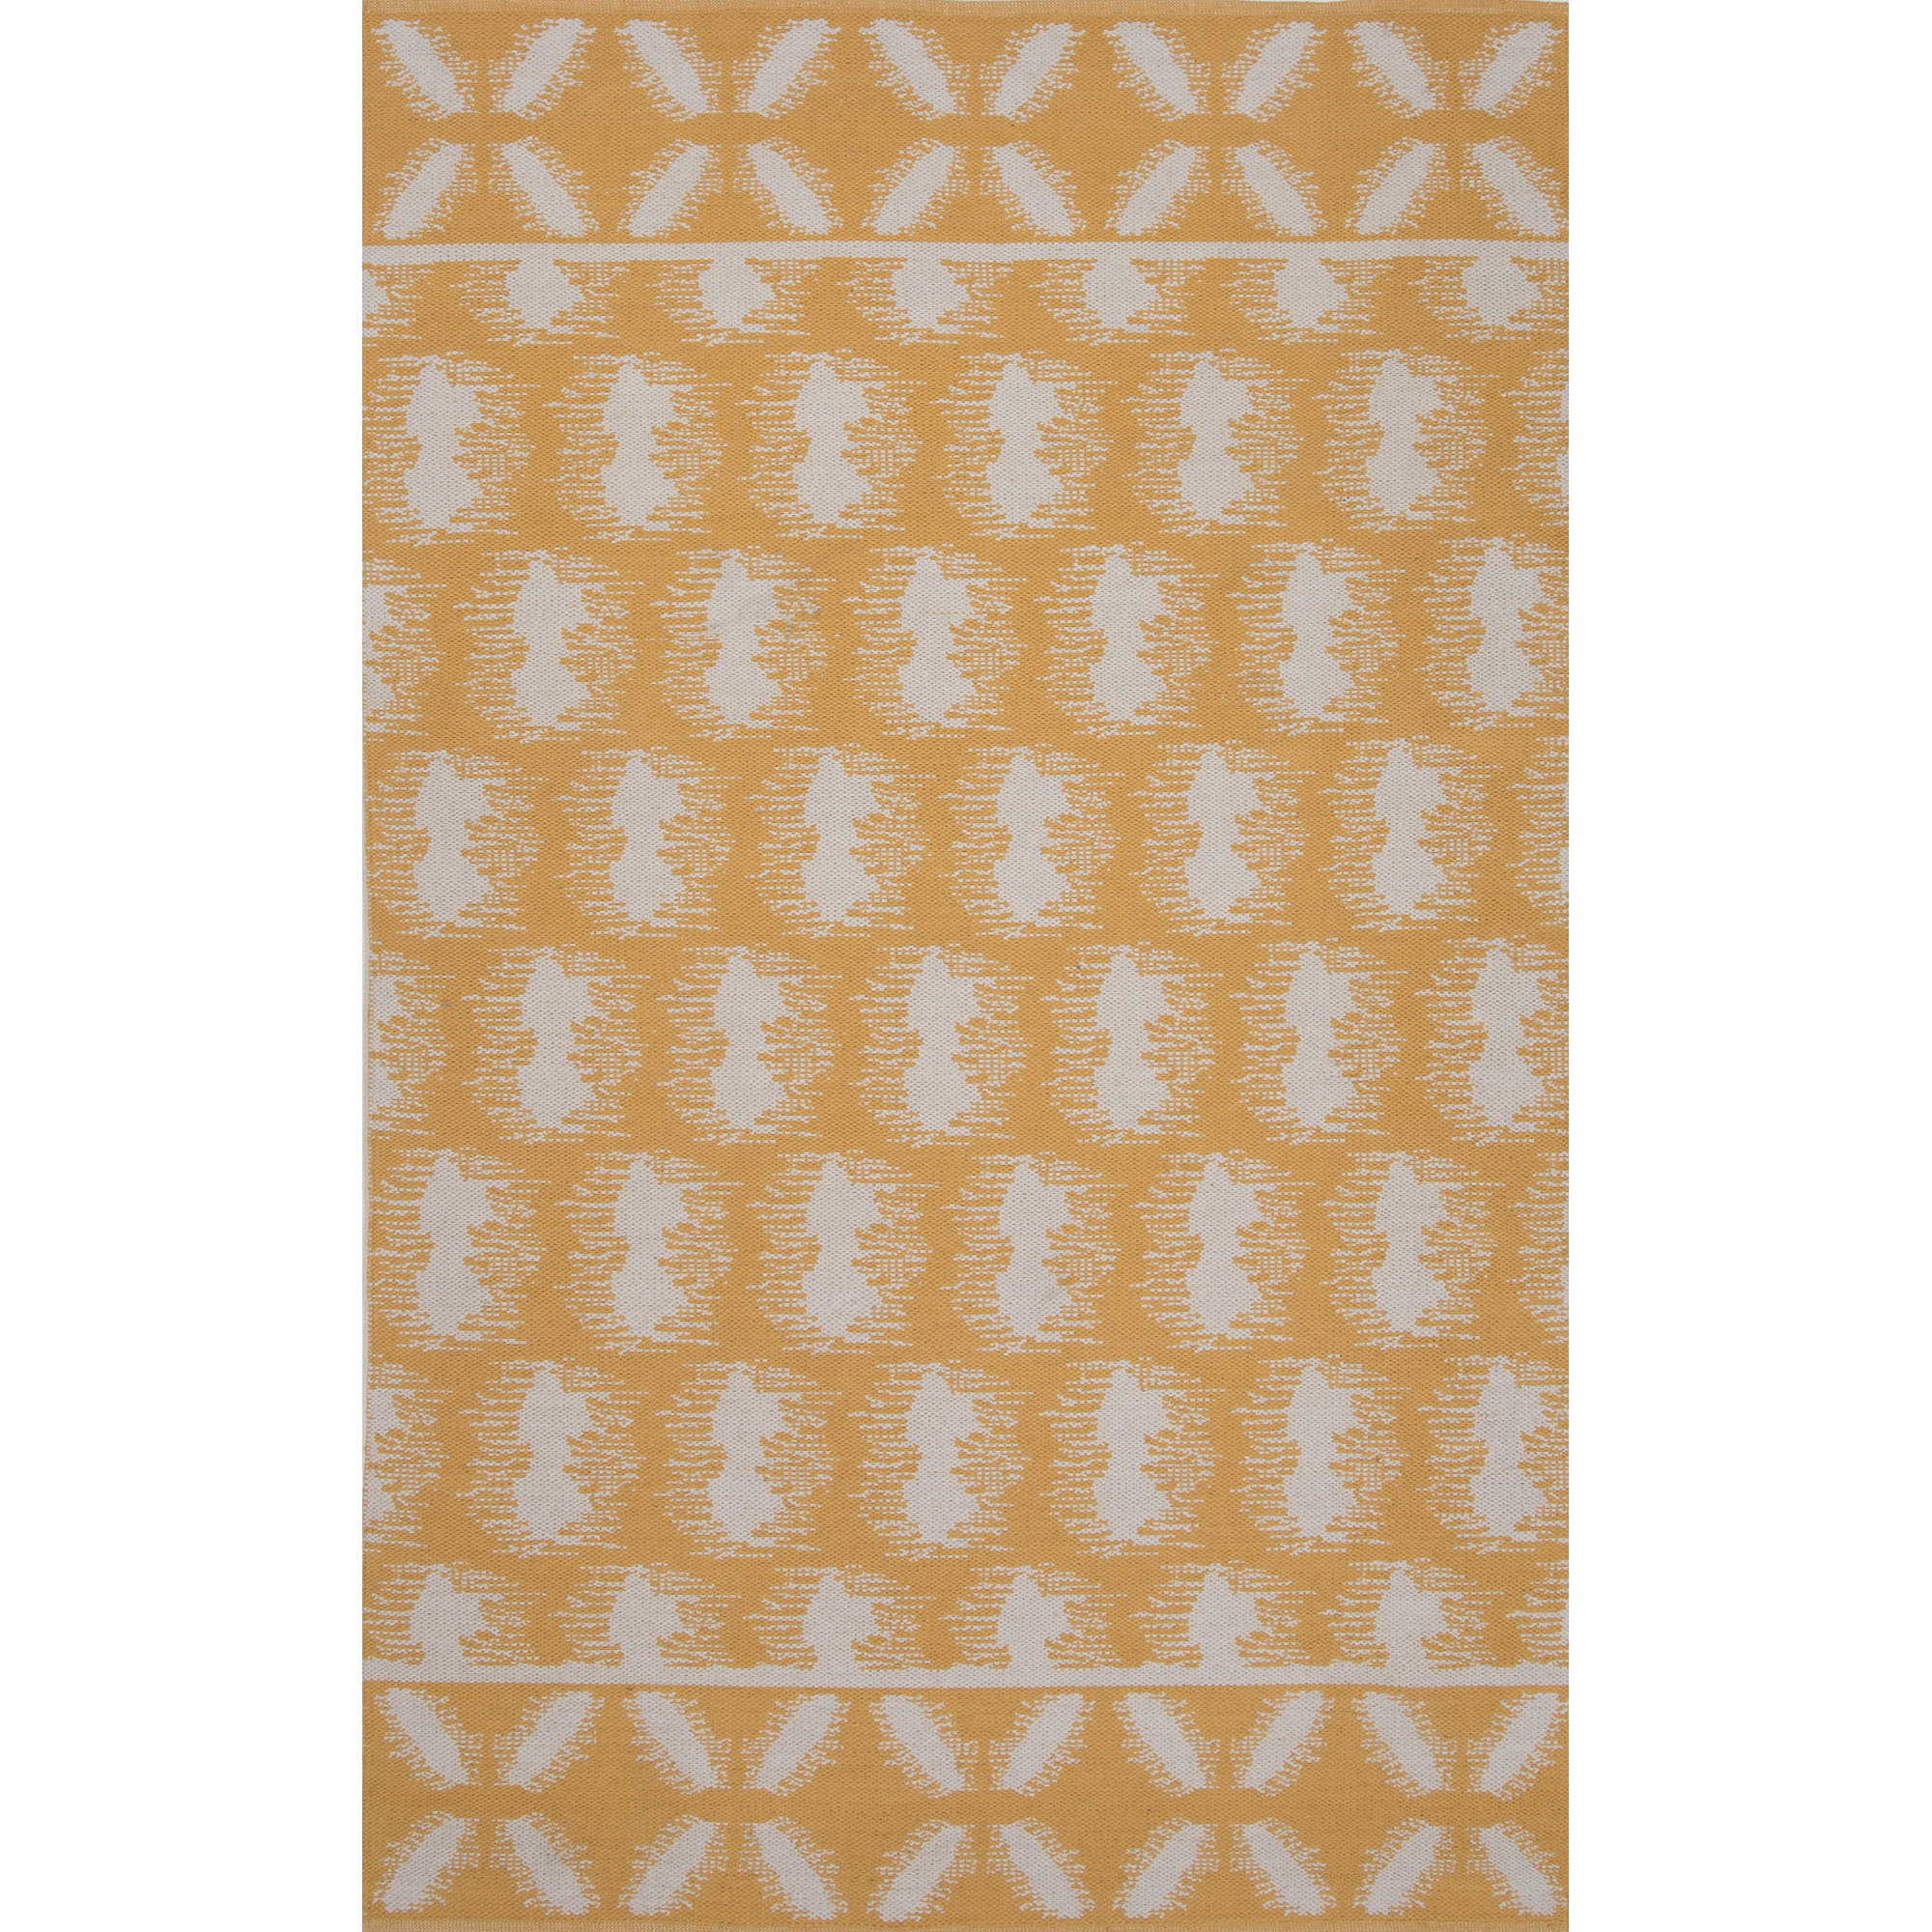 JAIPUR Rugs Traditions Modern Cotton Flat Weave 8 x 11 Rug - Item Number: RUG122233